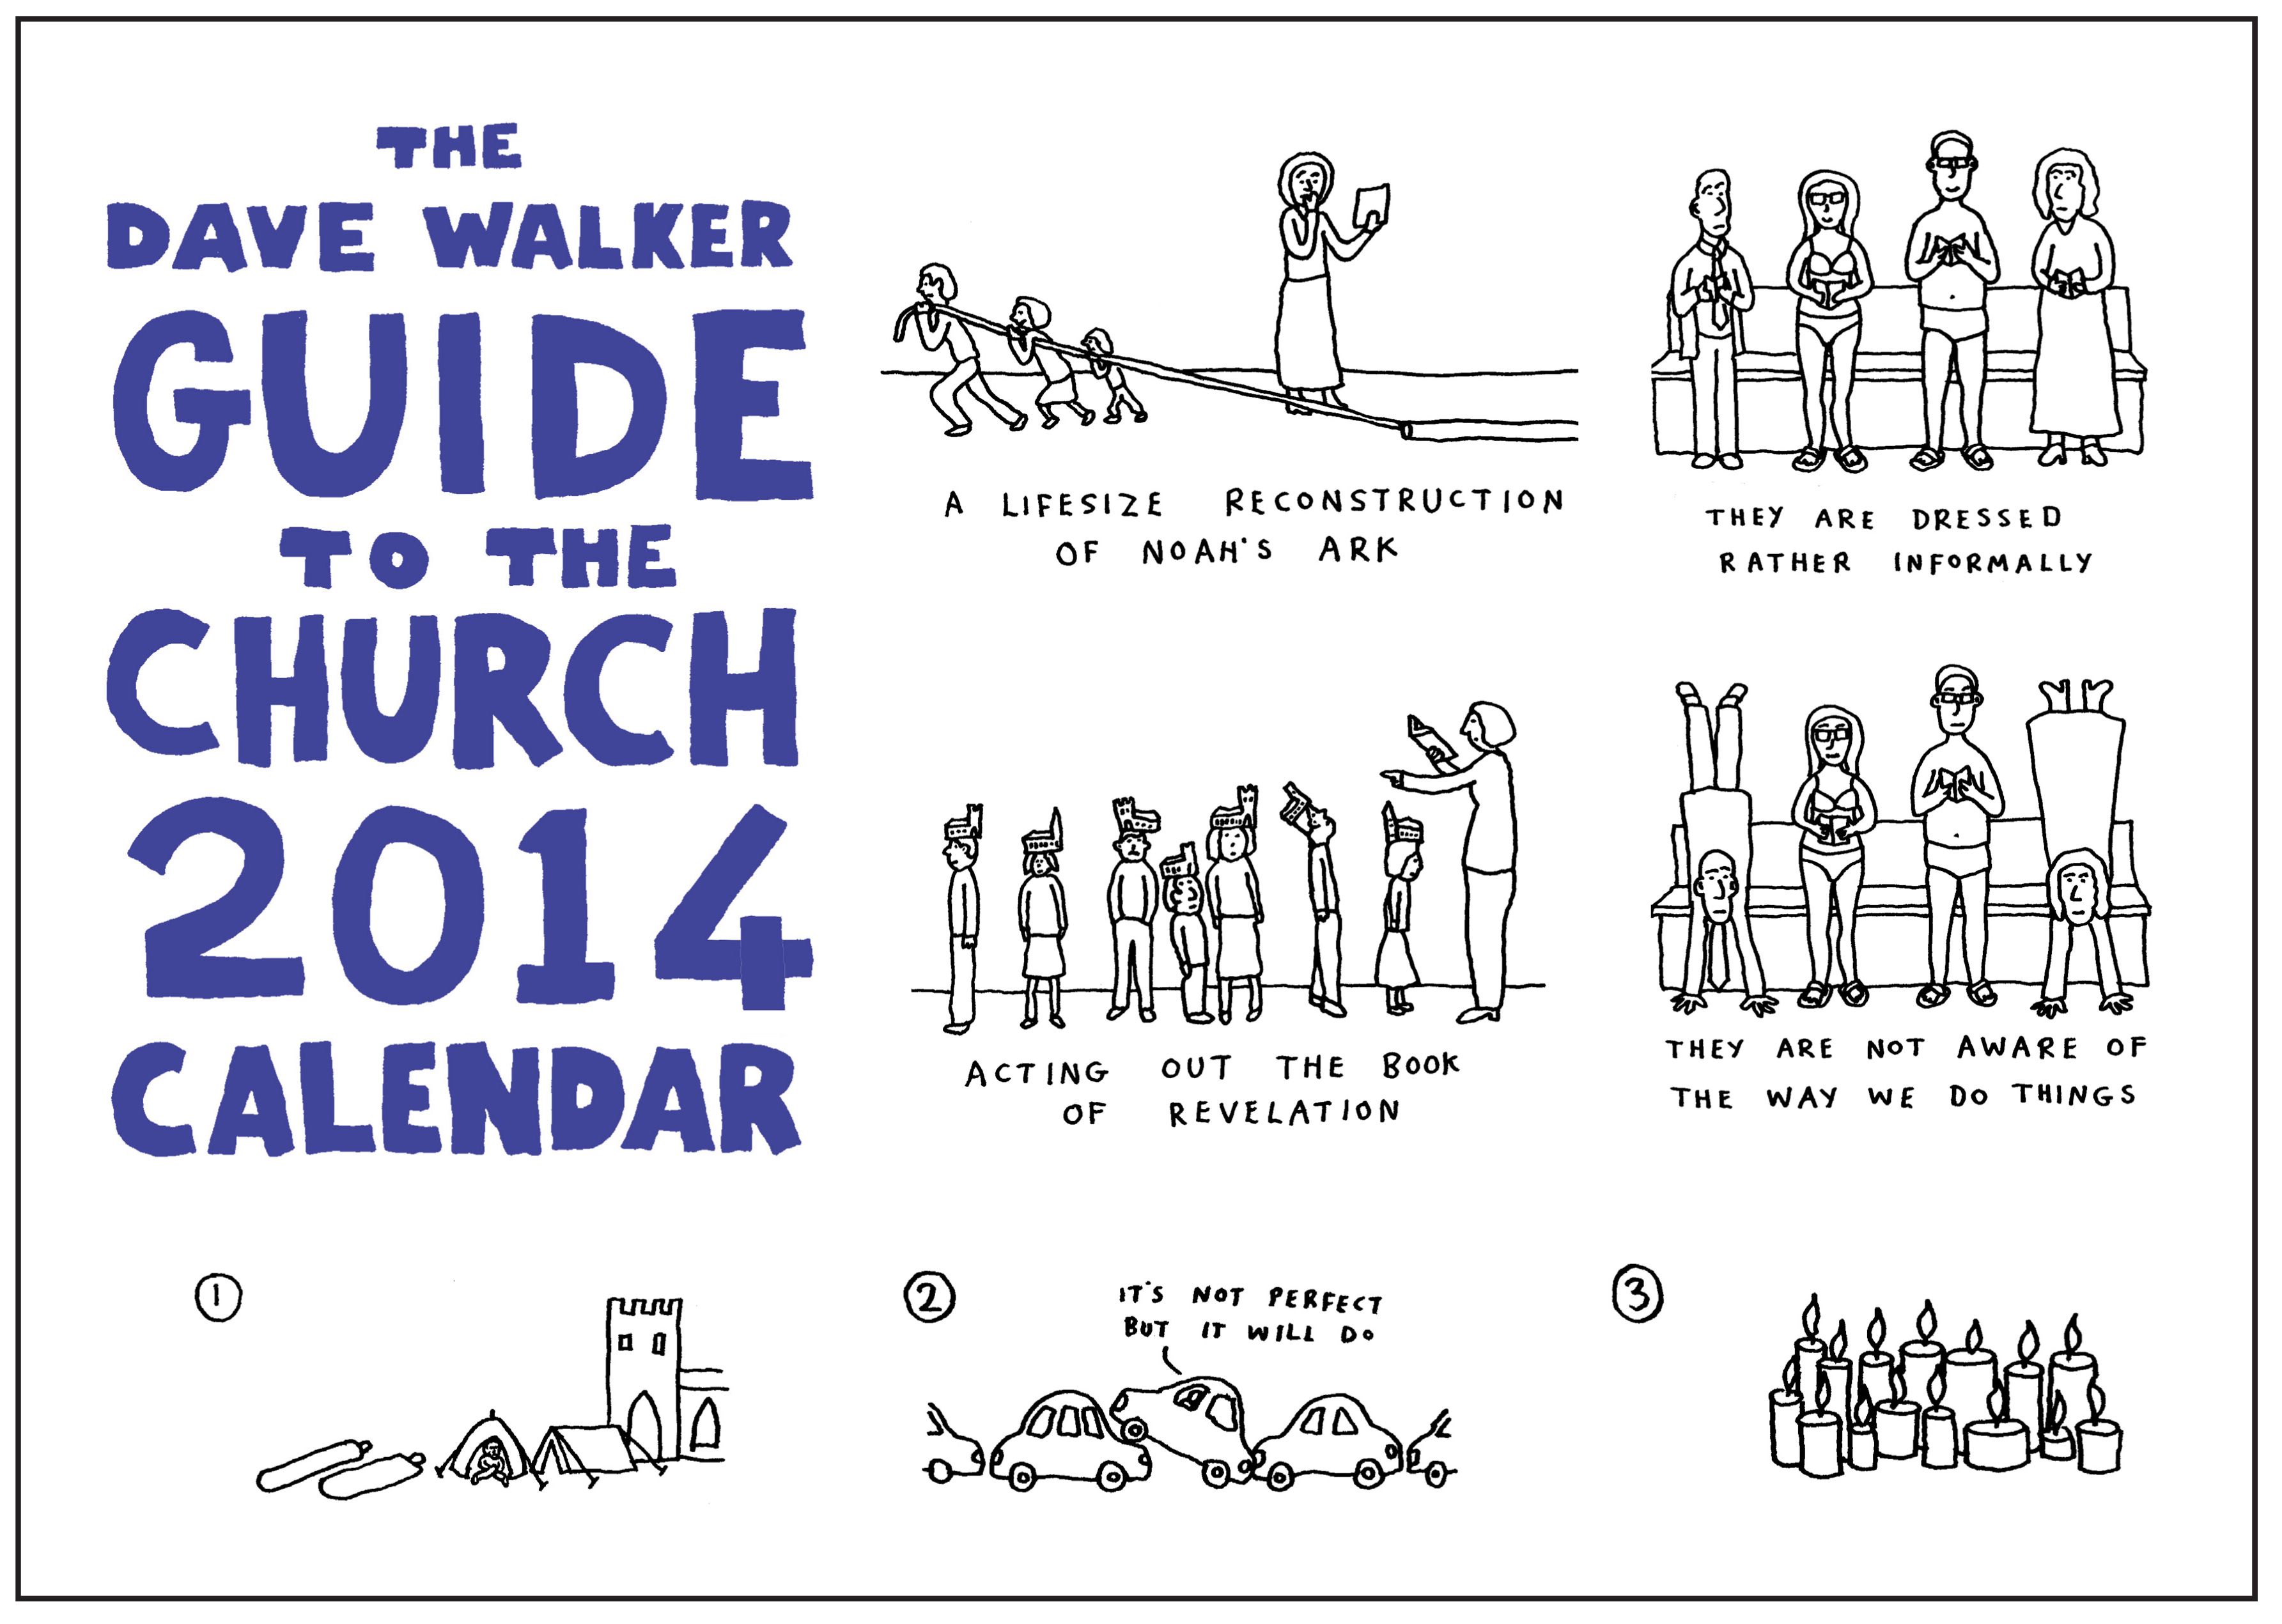 The Dave Walker Guide to the Church 2014 Calendar